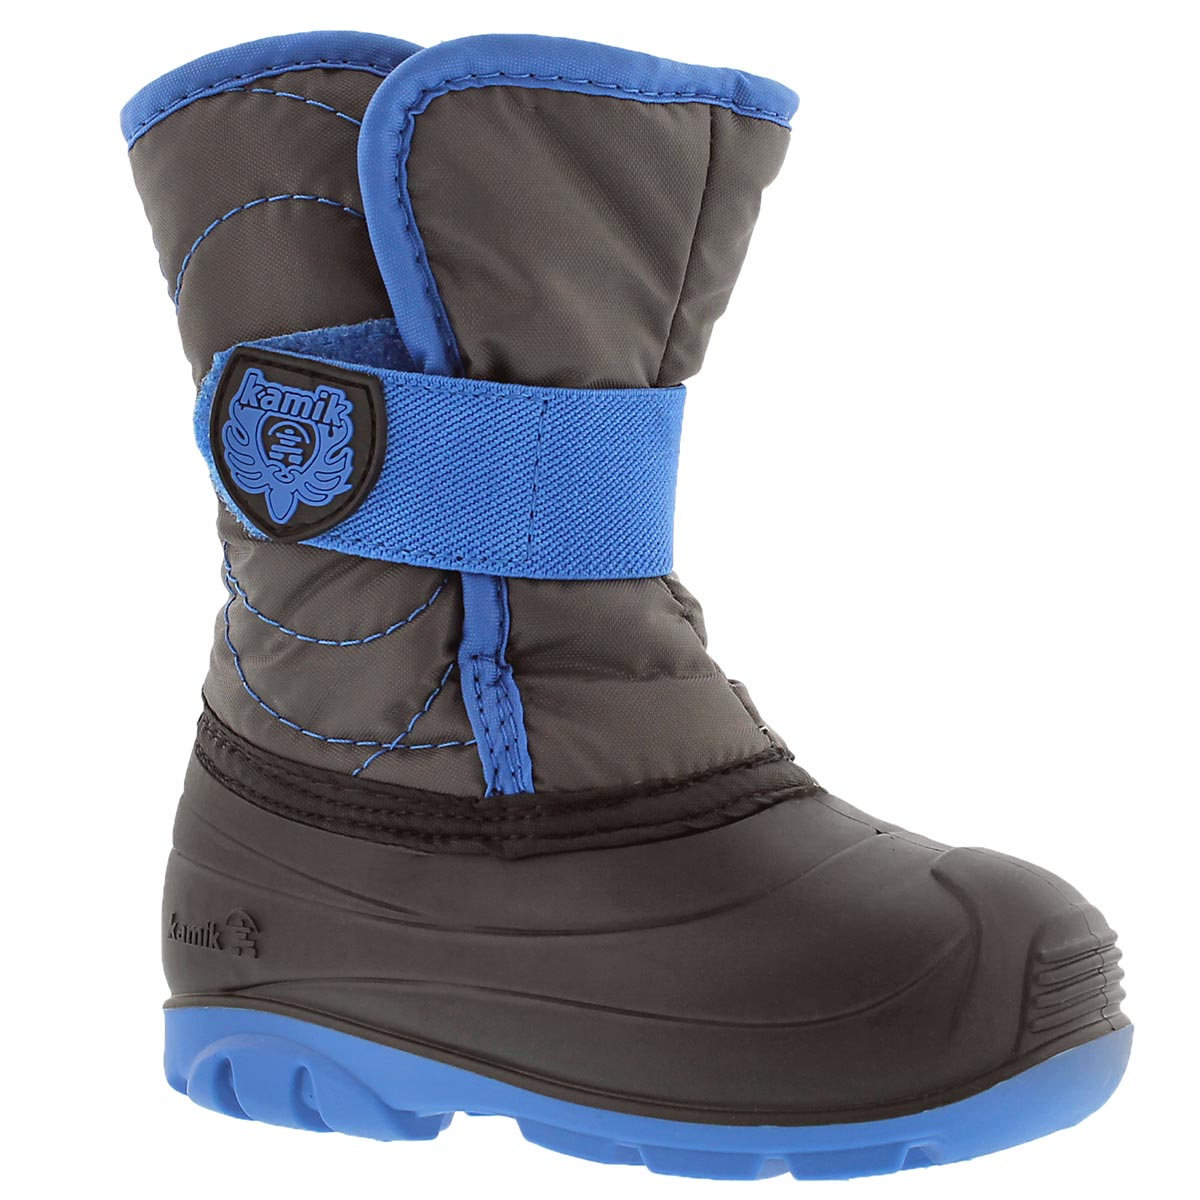 Infs Snowbug3 char/blu winter boot